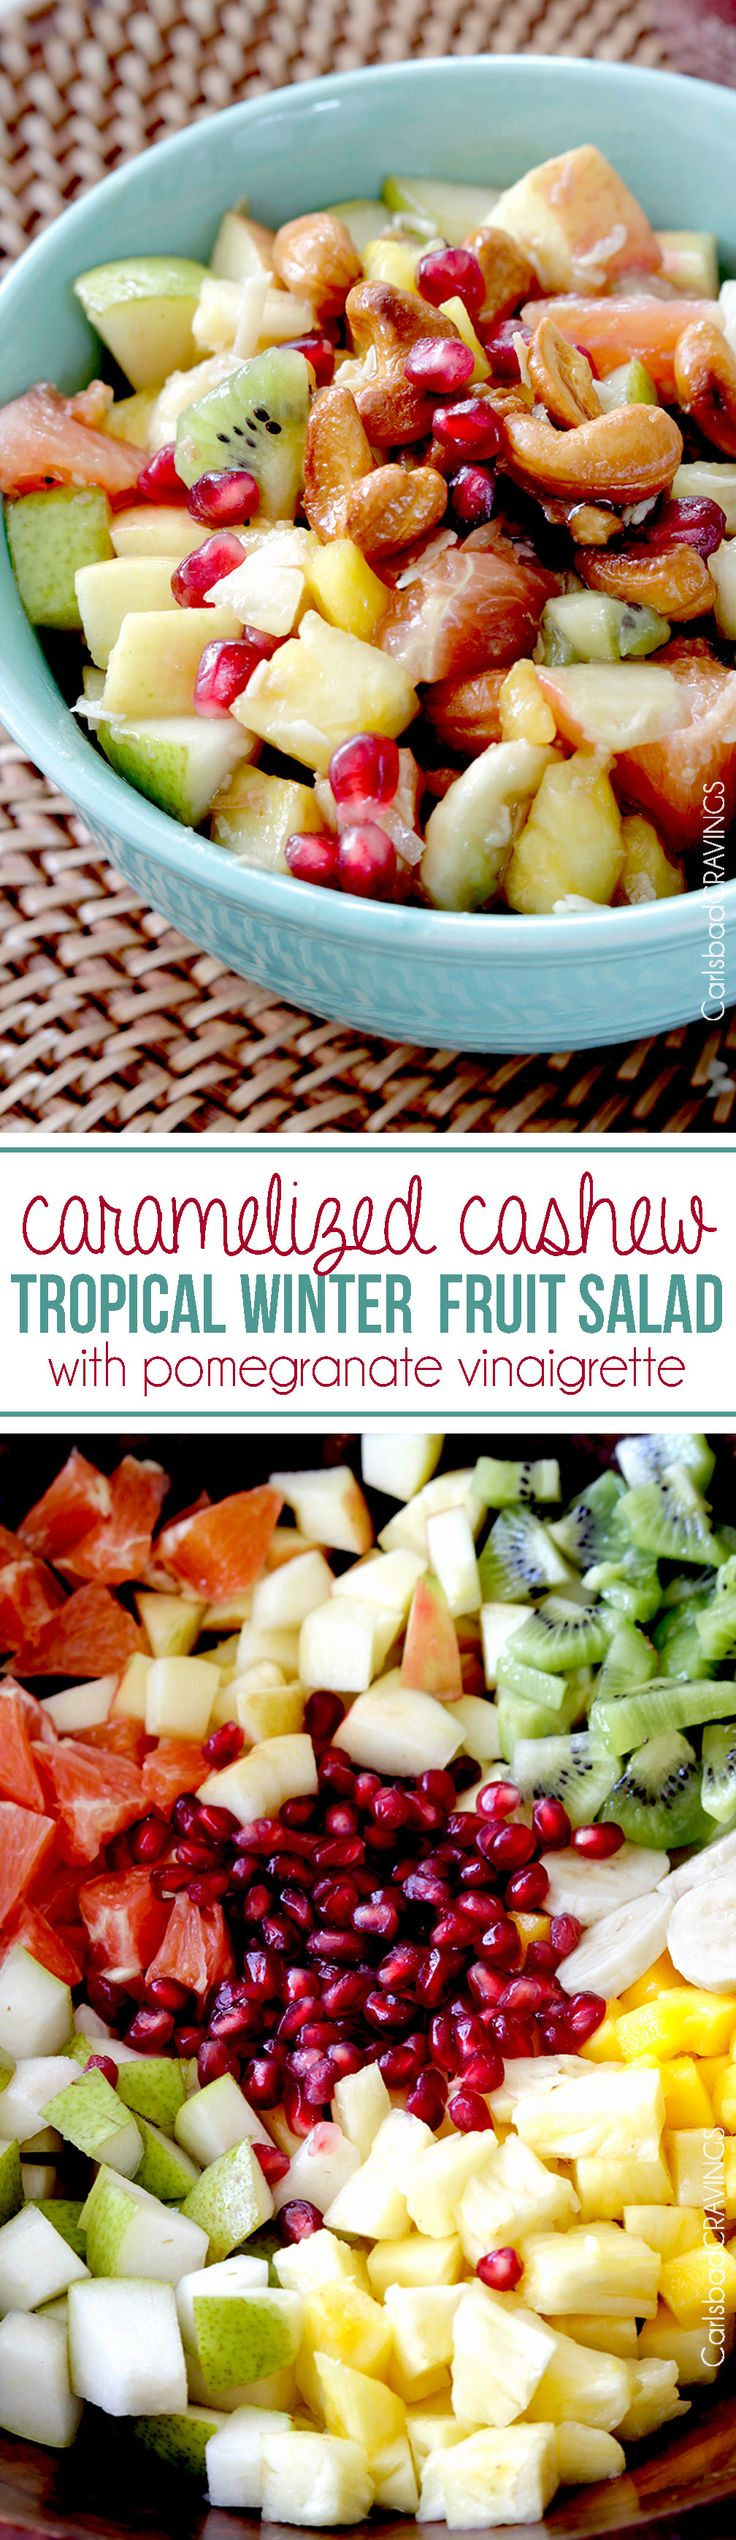 Sweet, refreshing, crunchy Tropical Winter Fruit Salad with Caramelized Cashews, and Pomegranate Vinaigrette sprinkled with toasted coconut bursting with tropical fruit.